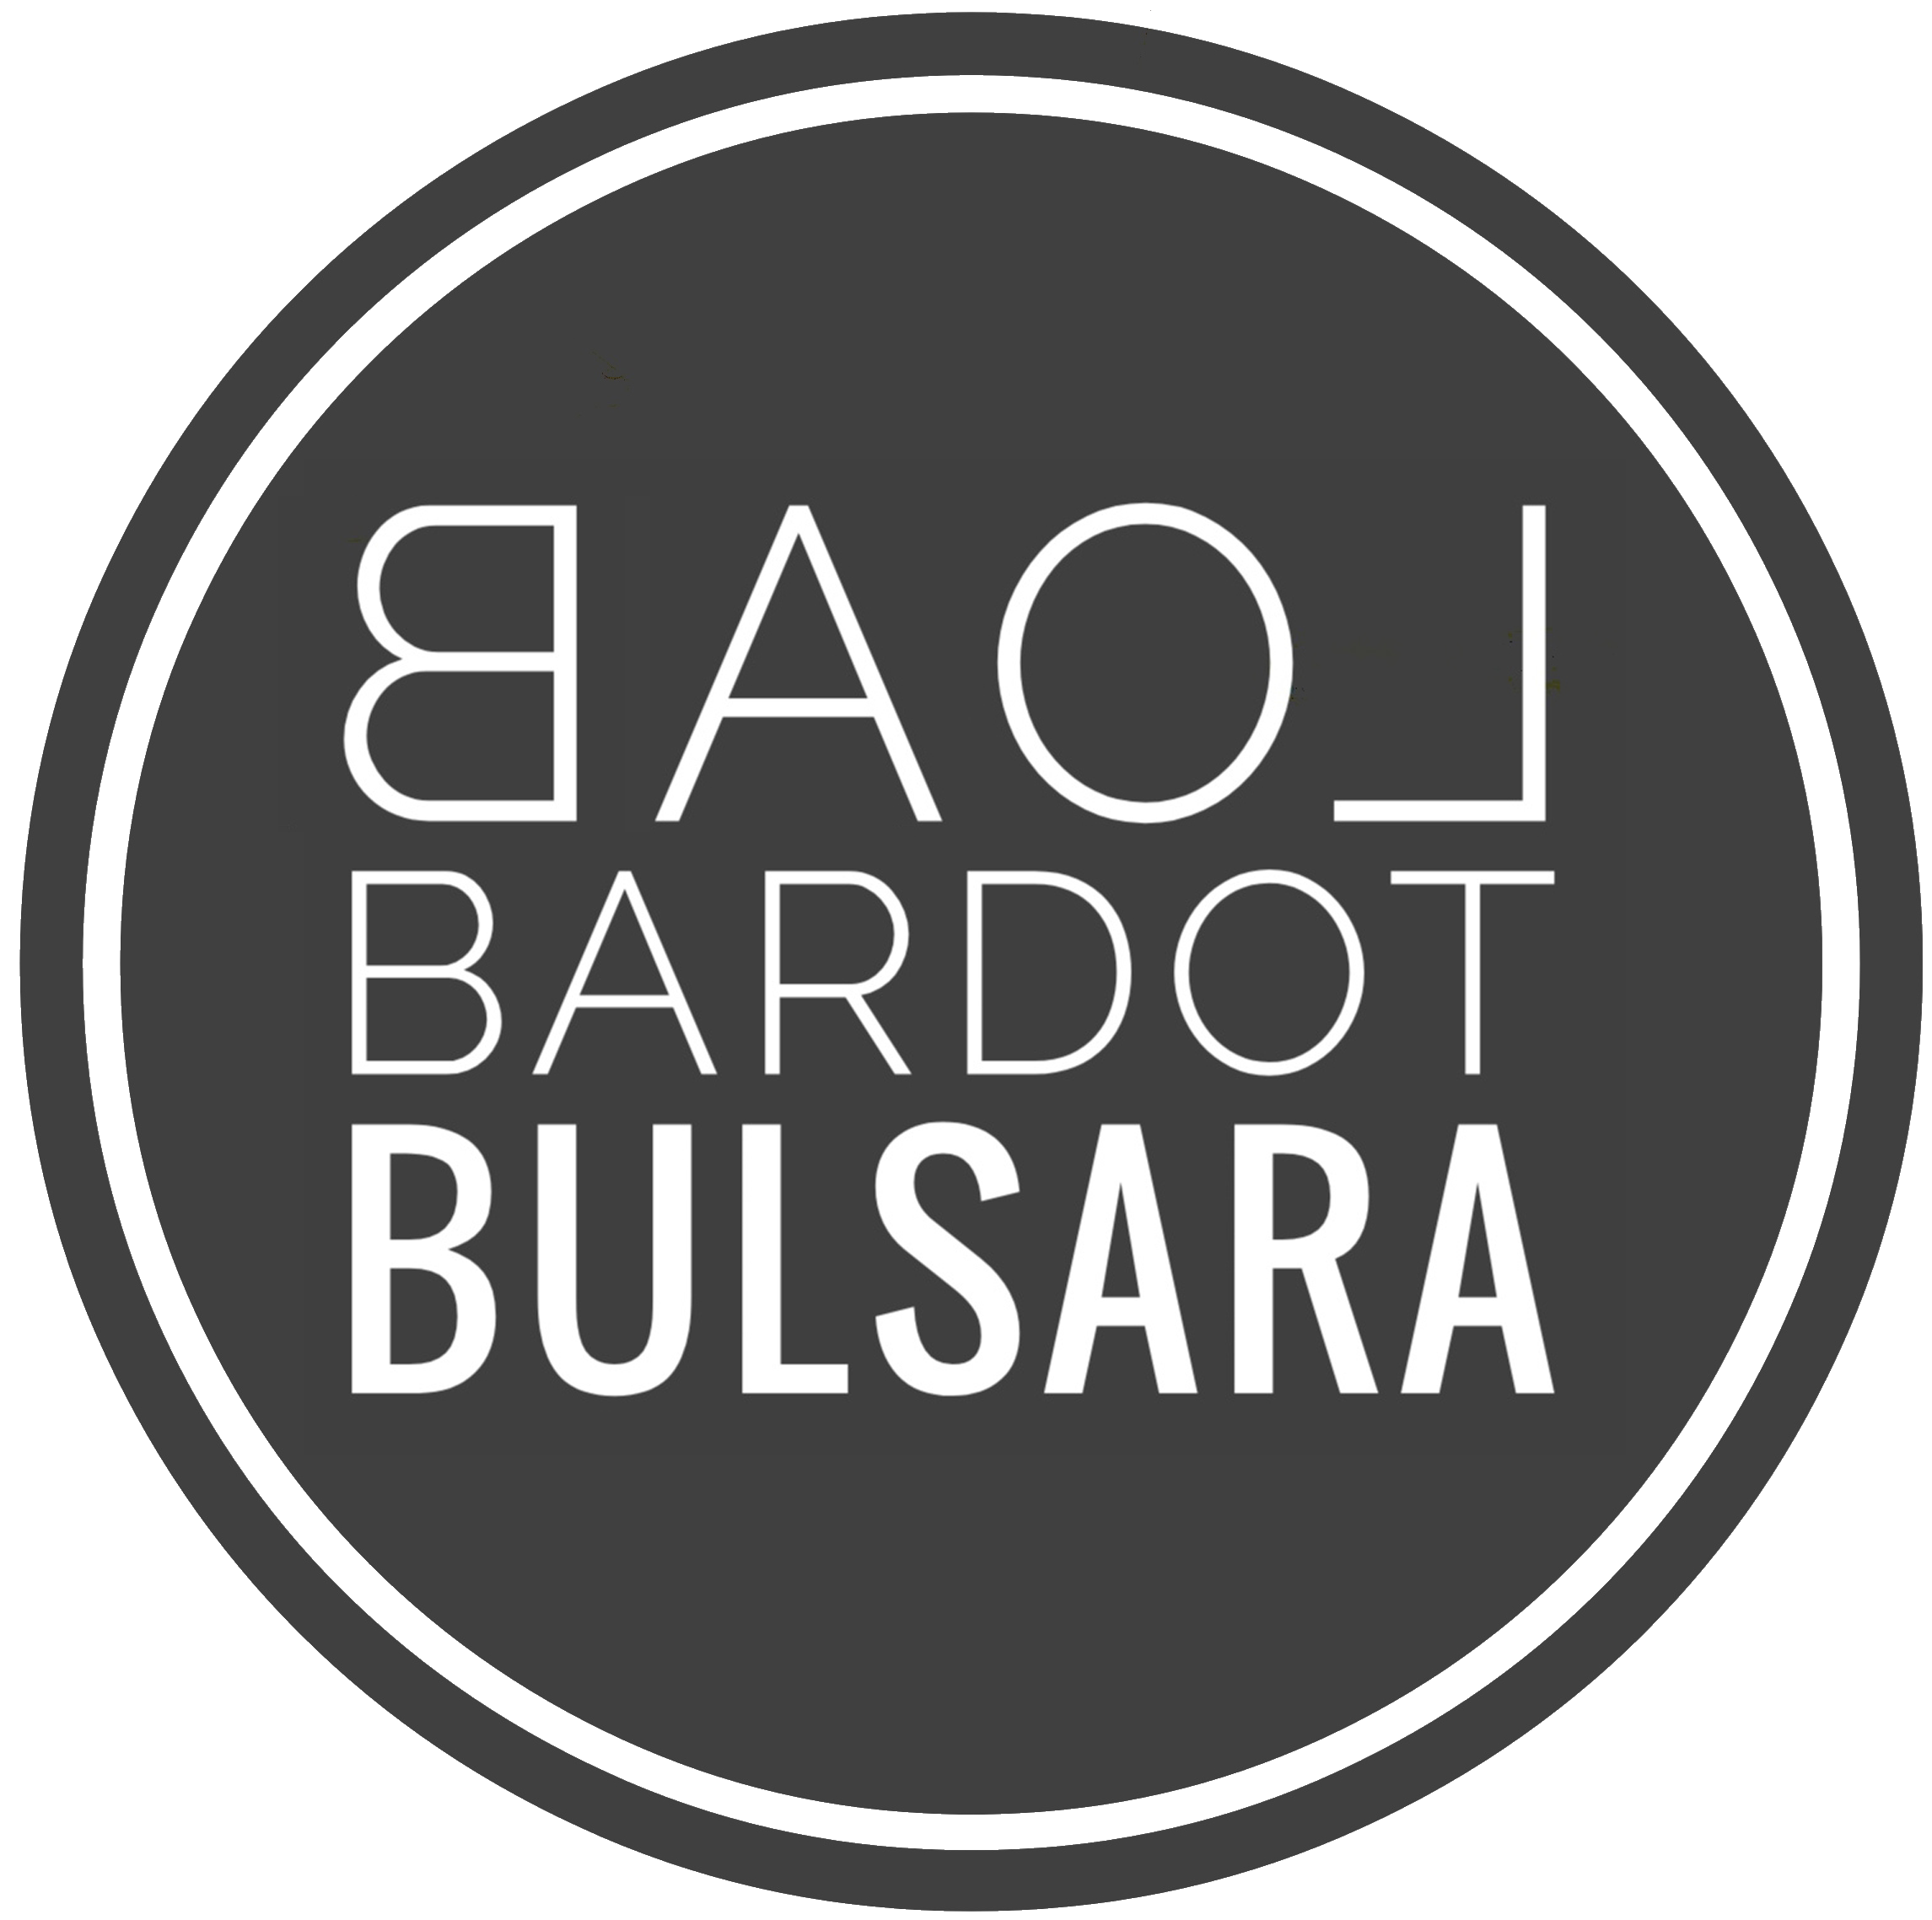 Baol Bardot Bulsara | Madrid | TNT and Studio Singer